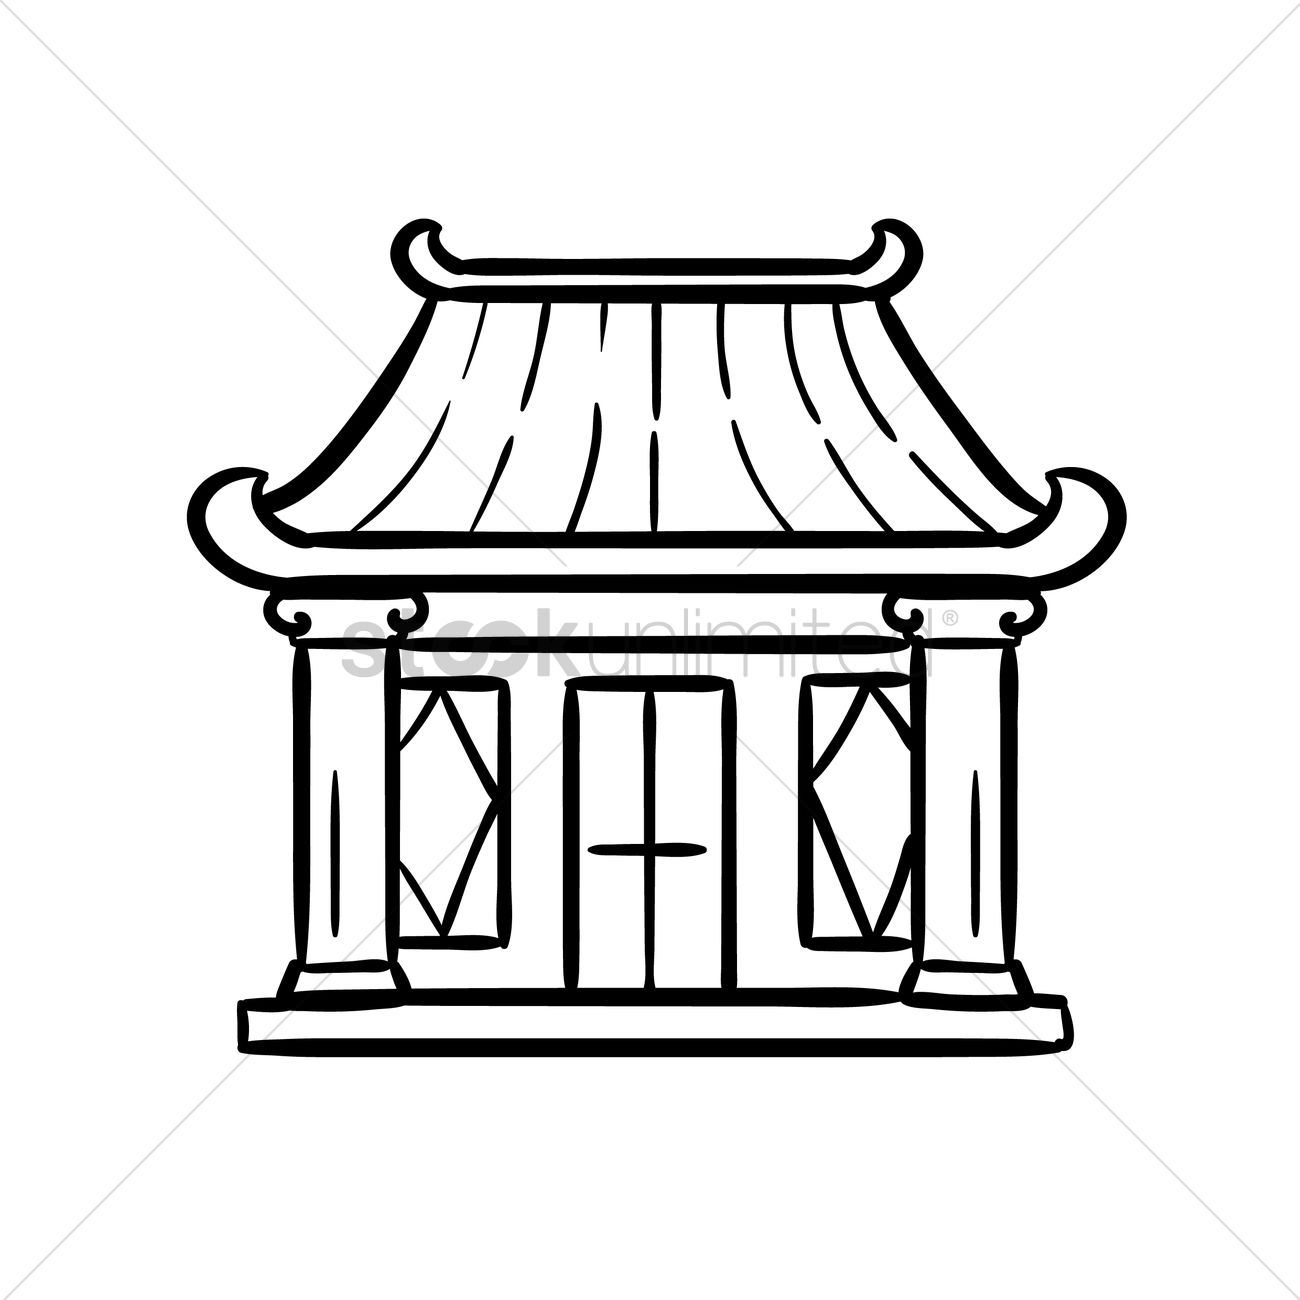 Temple clipart black and white 2 » Clipart Station.